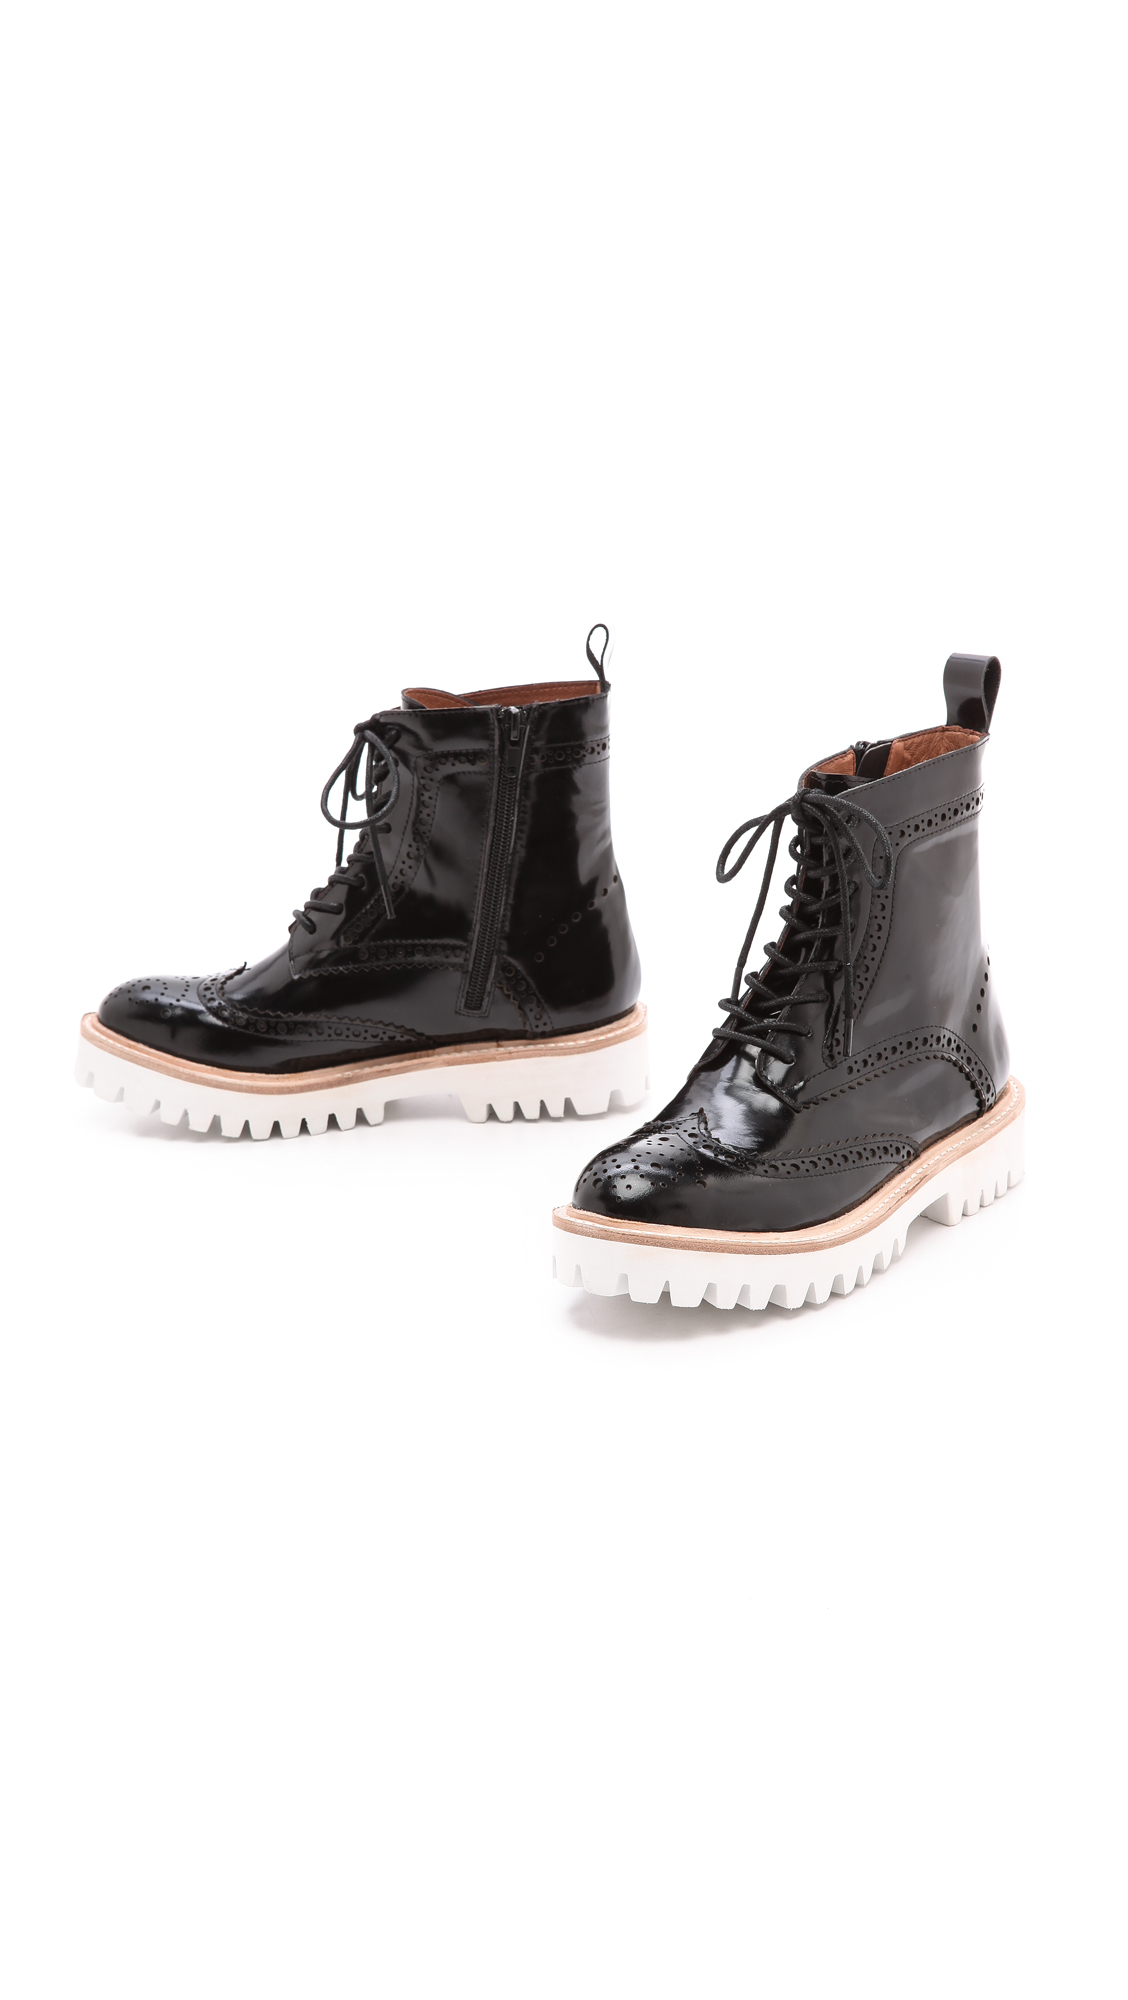 Jeffrey Campbell Clash Lug Sole Combat Boots Black In